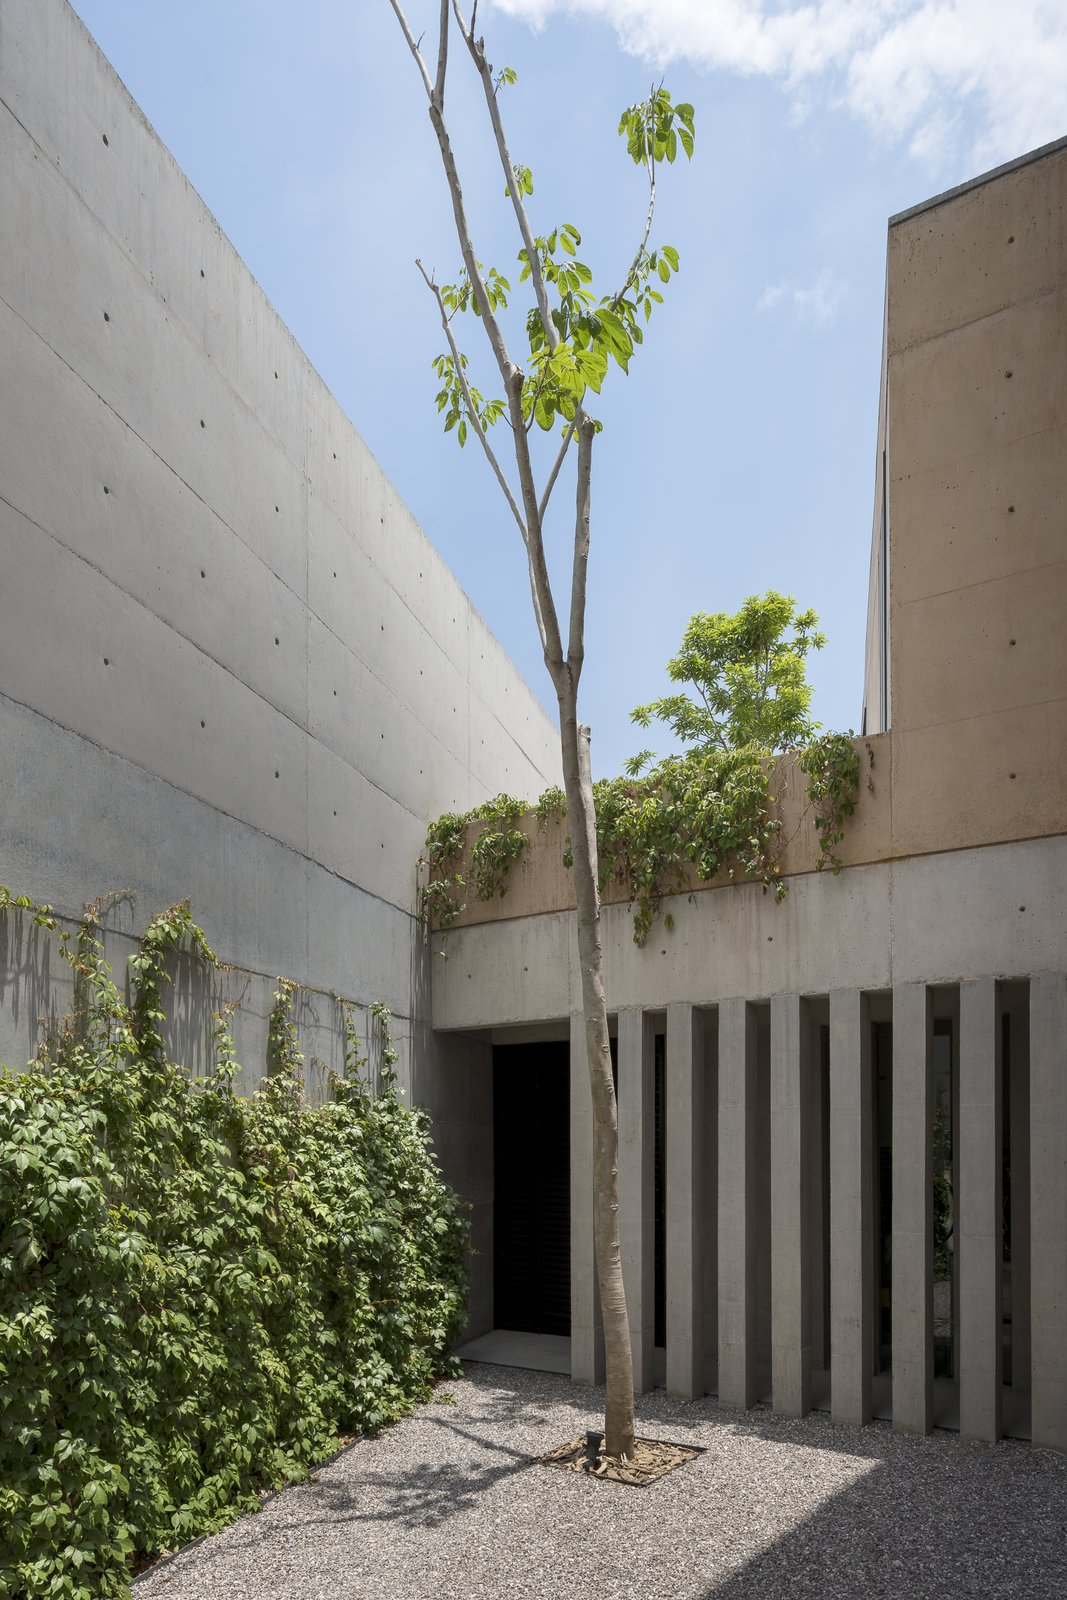 contrast between grey concrete and earthy-colored concrete.